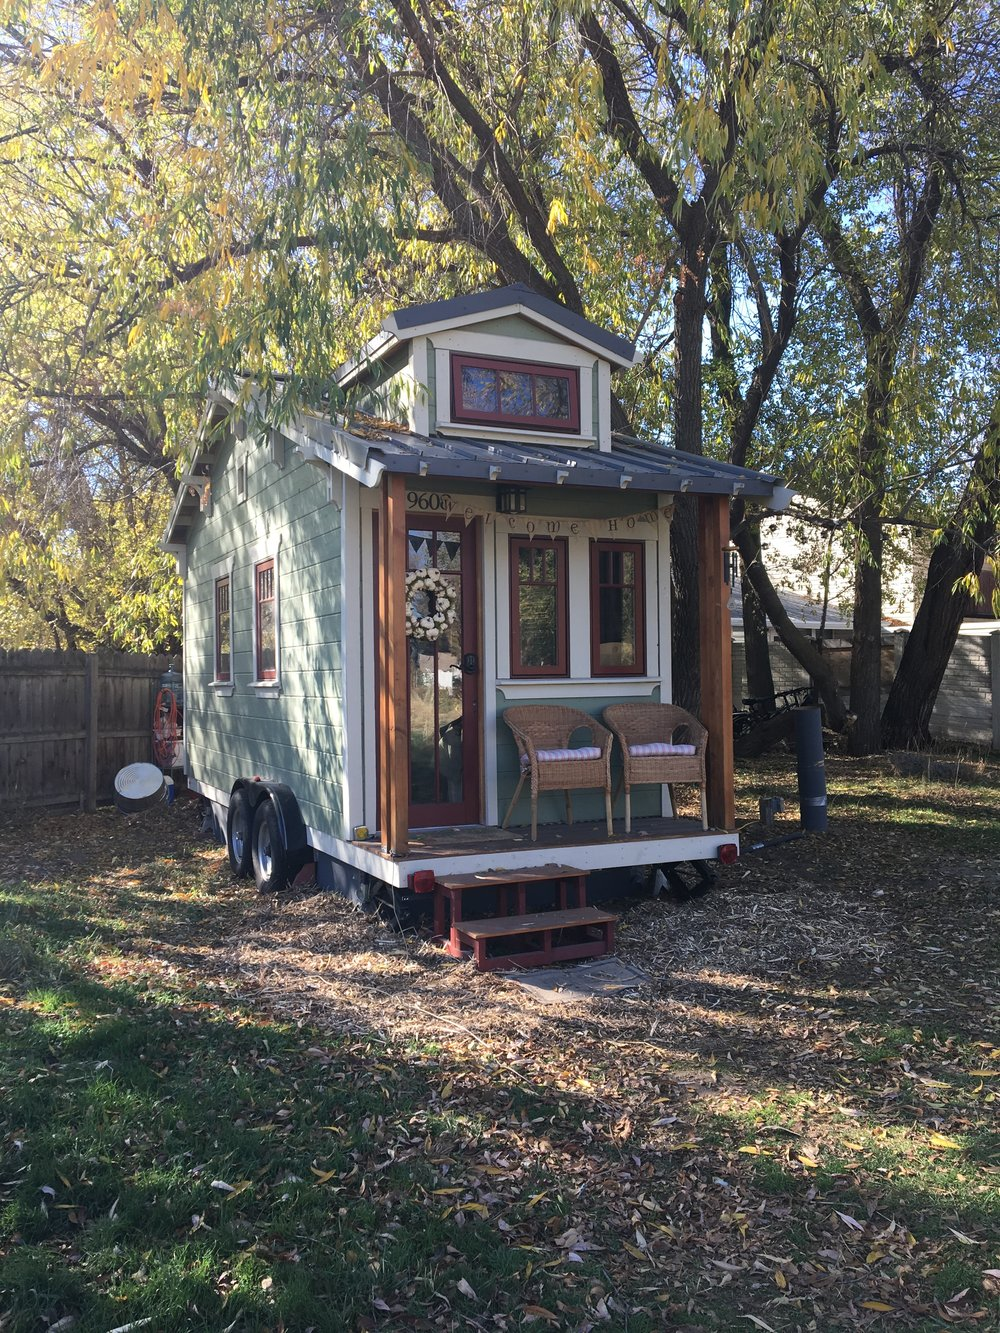 The tiny house, November 2016.